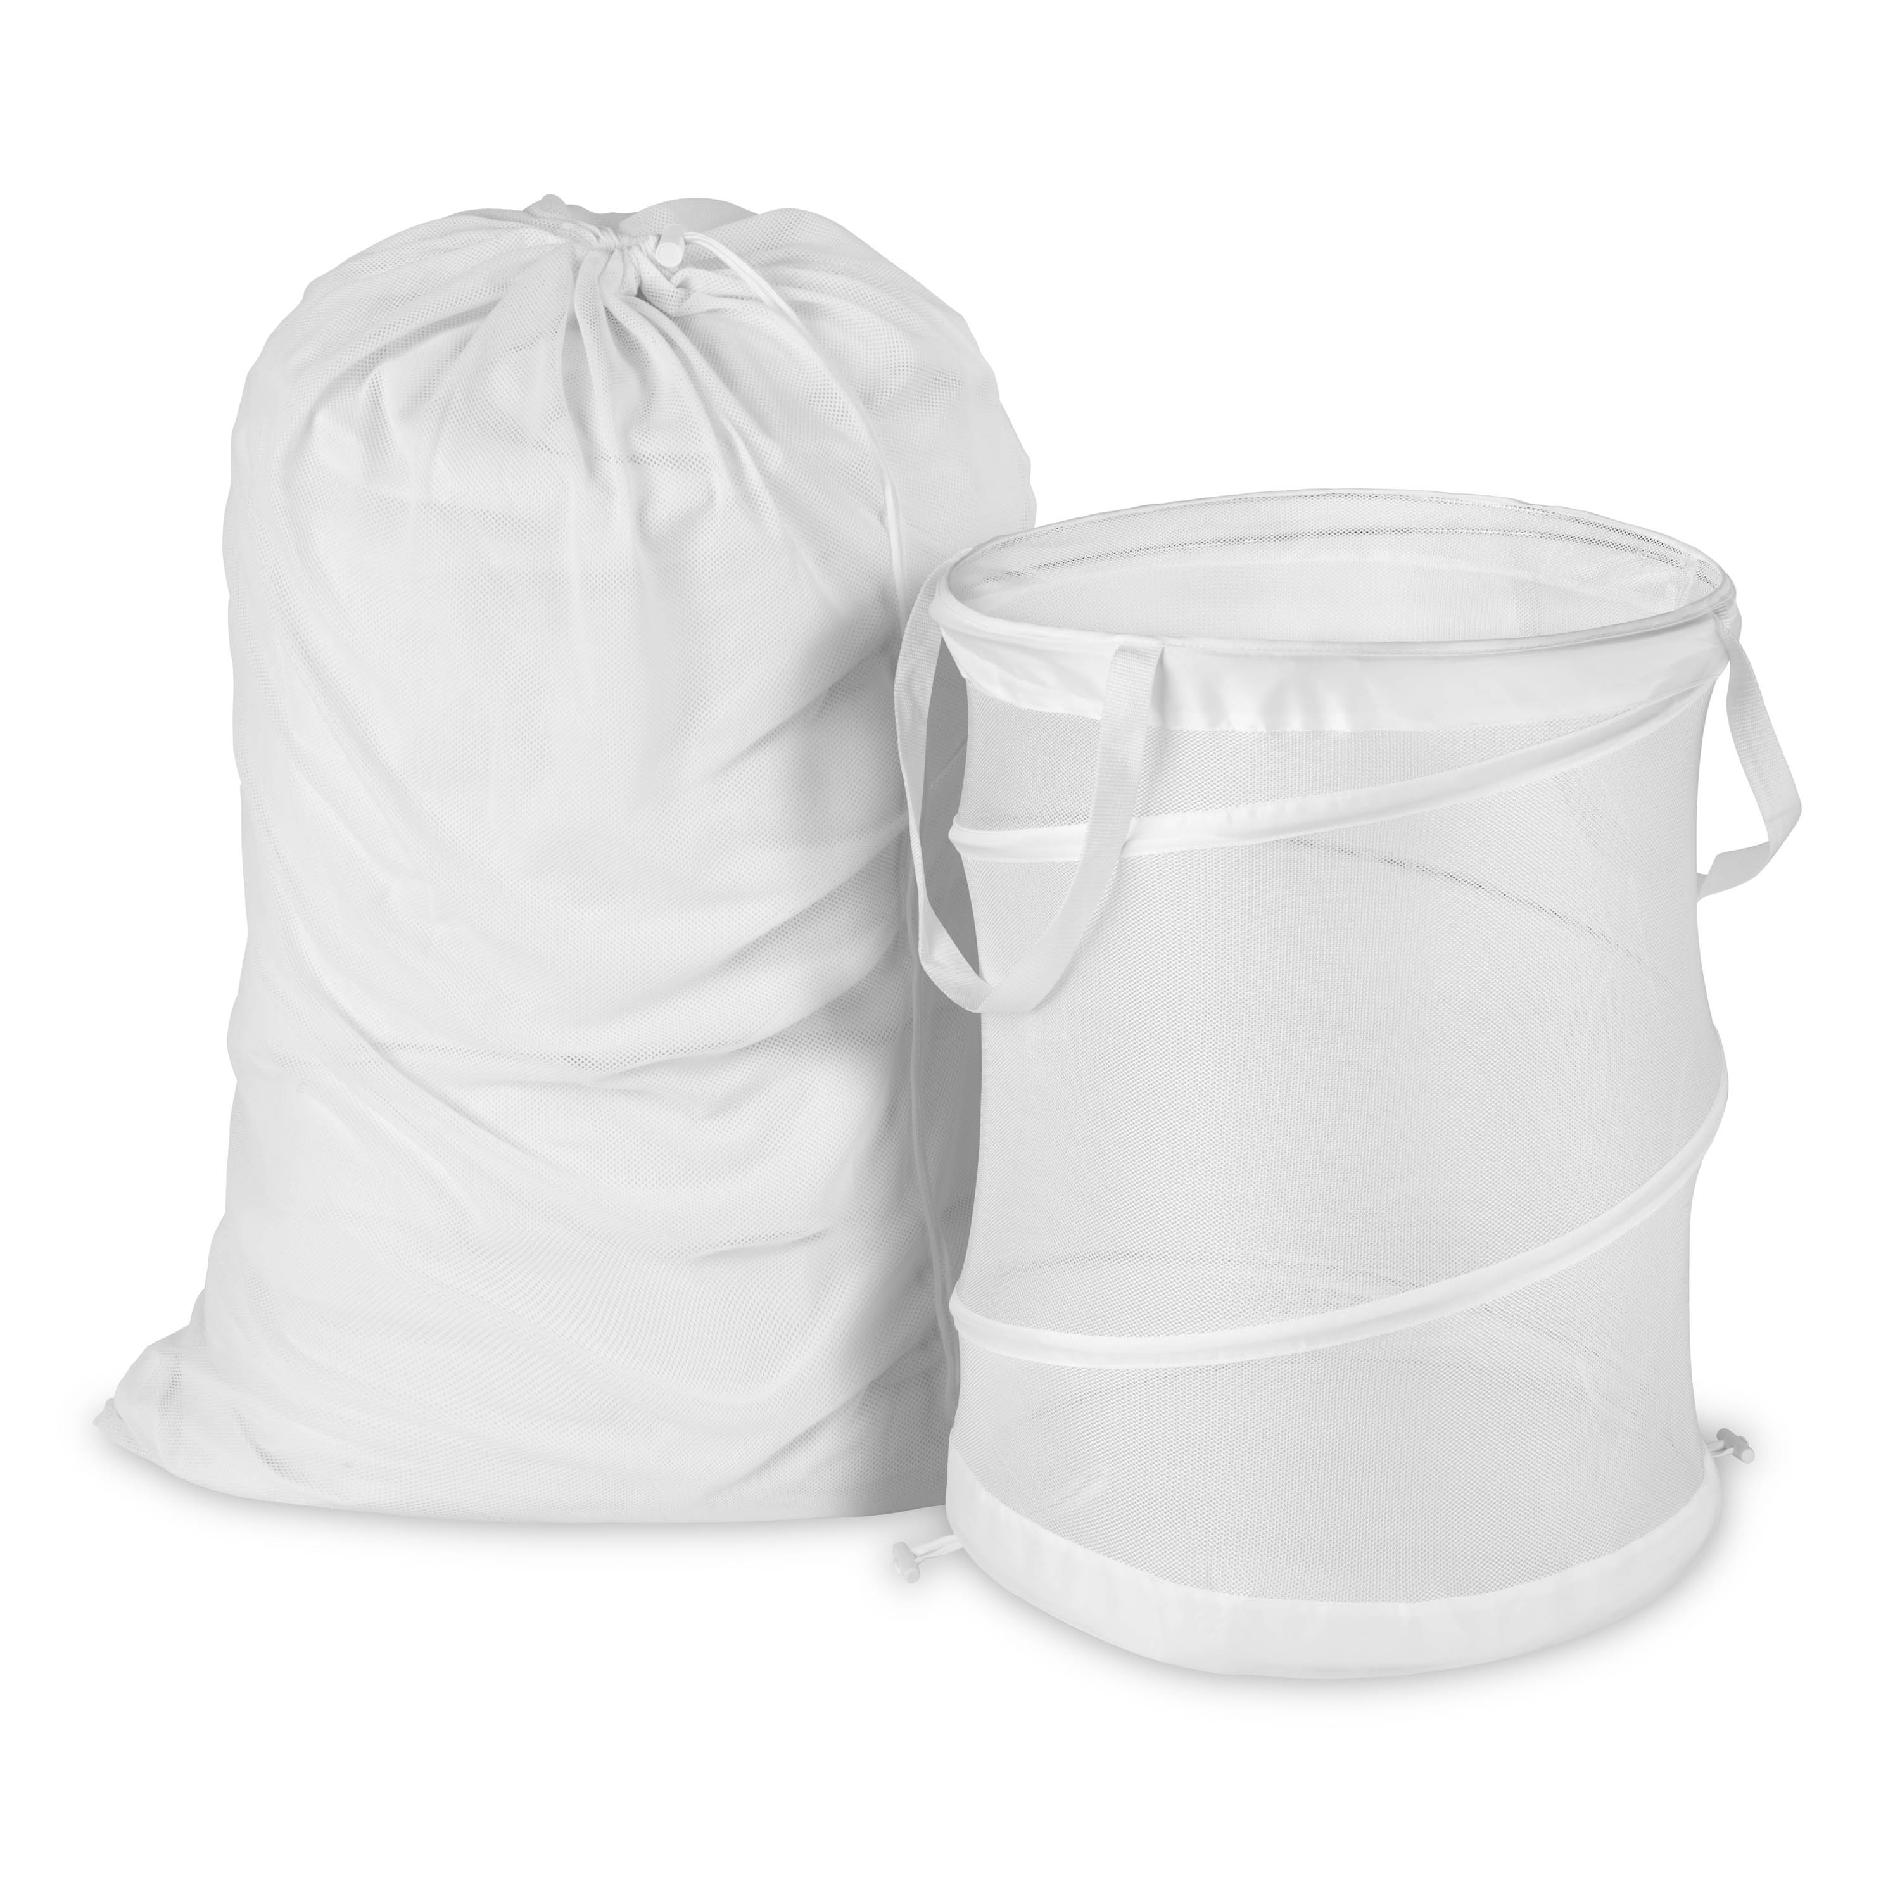 Laundry Clothes Bag Honey Can Do White Mesh Laundry Bag And Hamper Kit Home